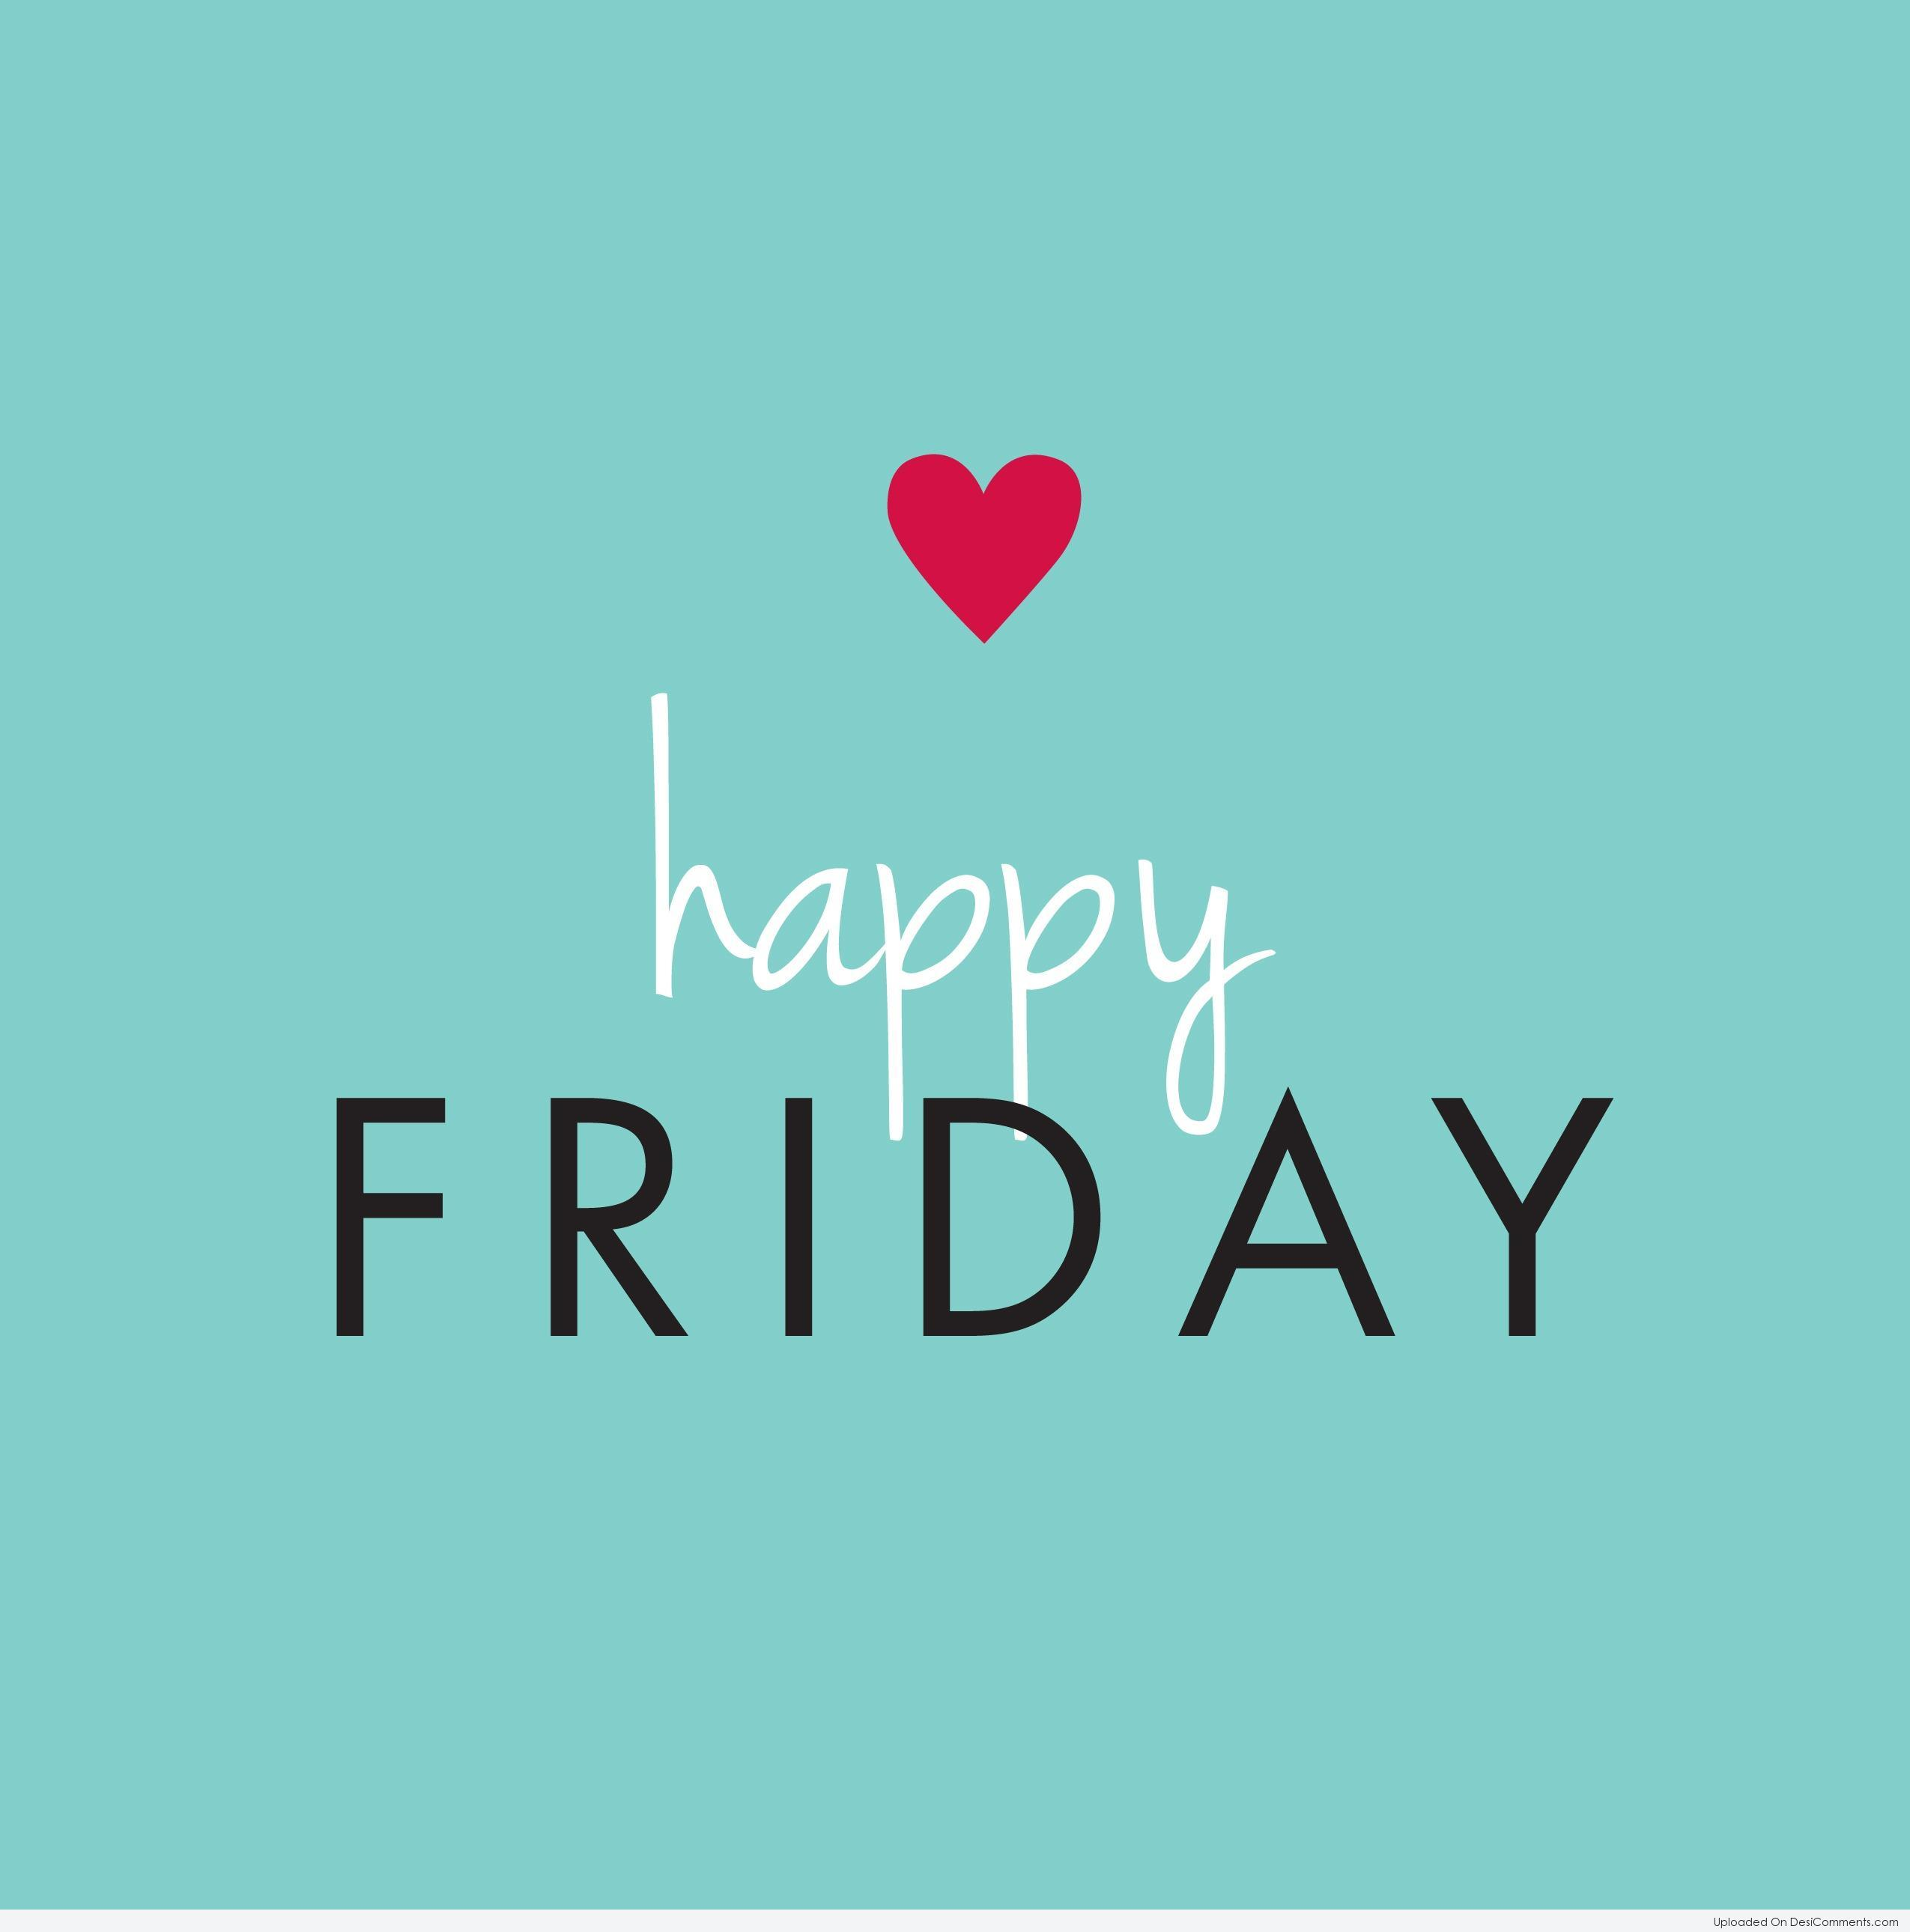 Happy Friday - DesiComments.com